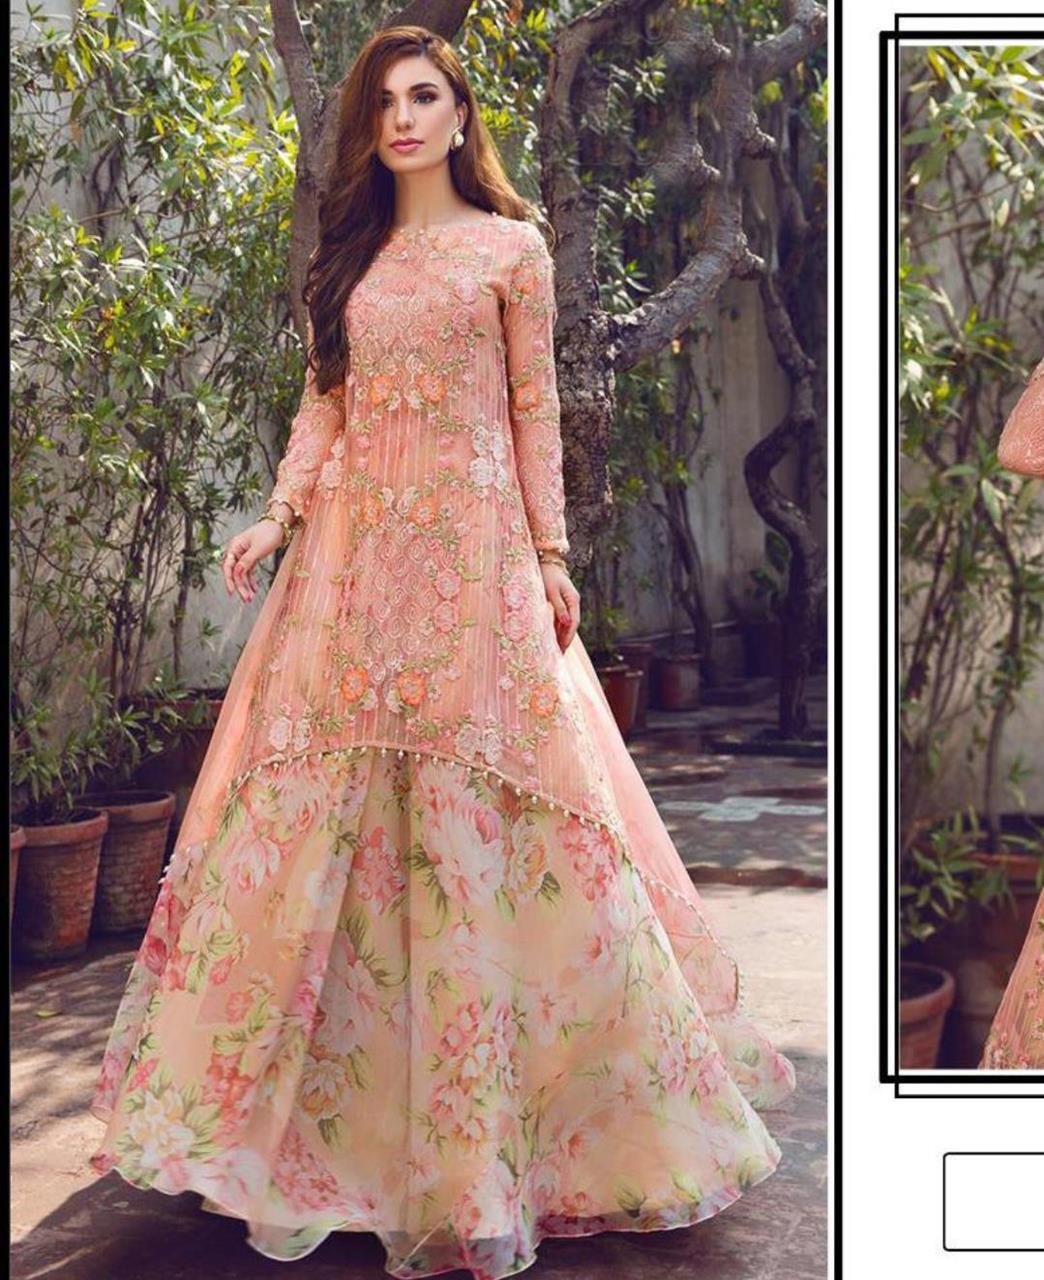 Printed Georgette Lehenga in Peach